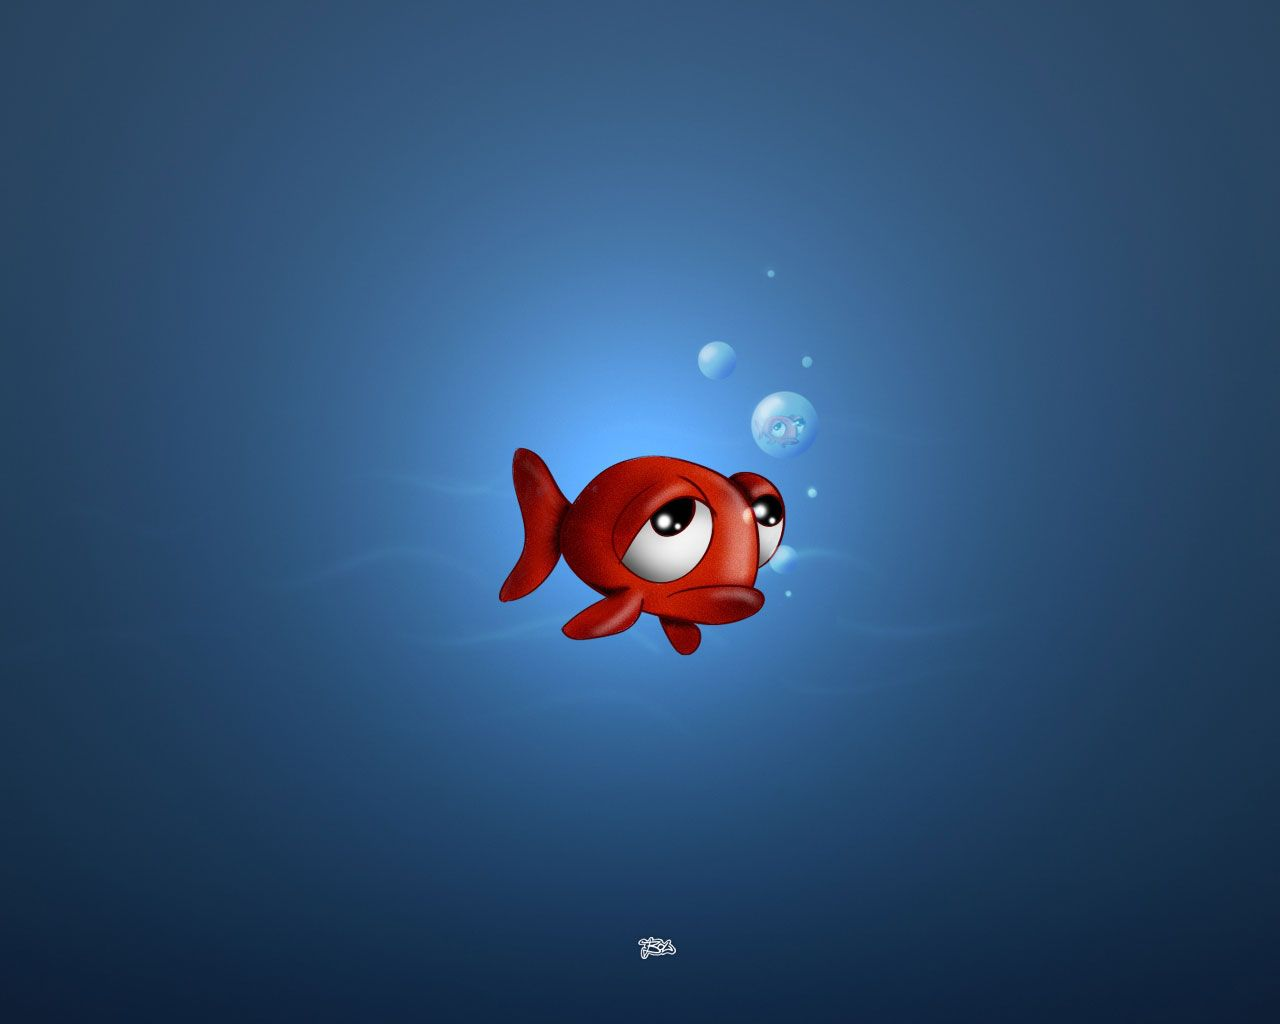 Animated Wallpapers For Mobile Cute Wallpapers Animated Wallpaper Cute moving wallpapers for cellphone